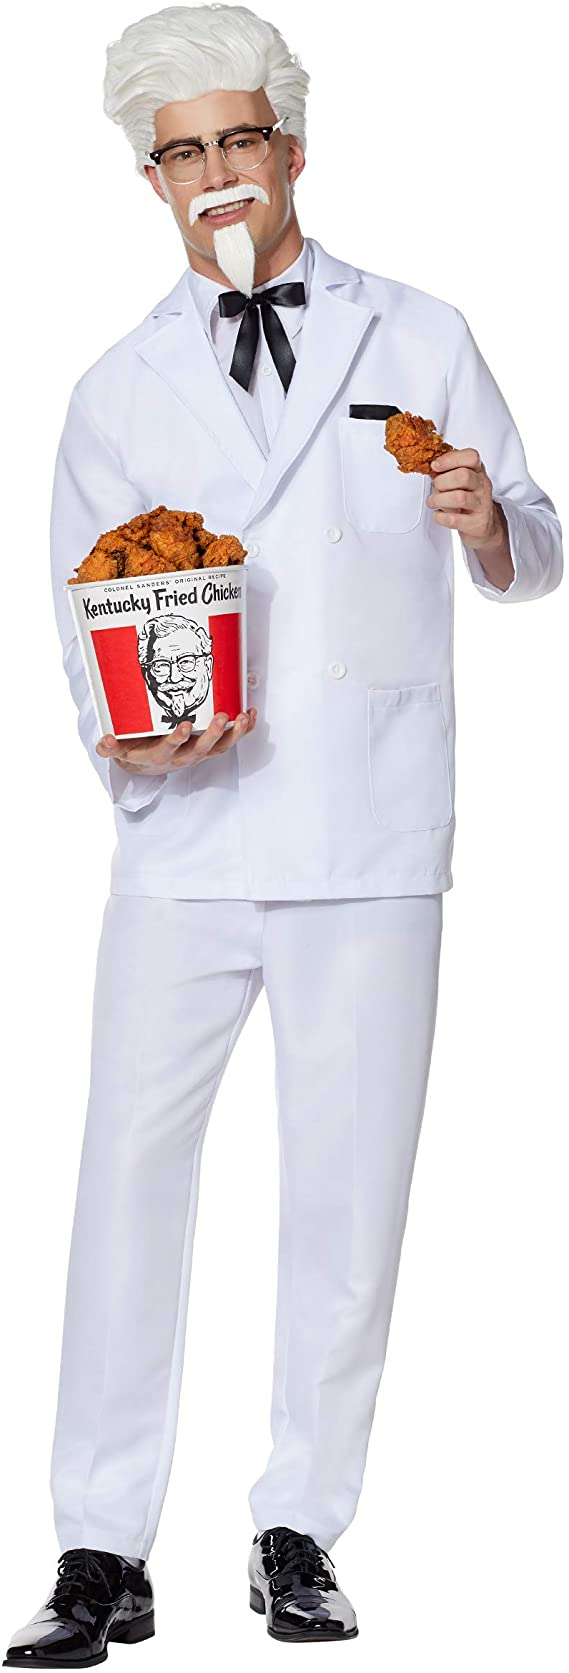 Victorian Men's Costumes: Mad Hatter, Rhet Butler, Willy Wonka Spirit Halloween KFC Colonel Sanders Costume for Adults | Officially Licensed $49.99 AT vintagedancer.com